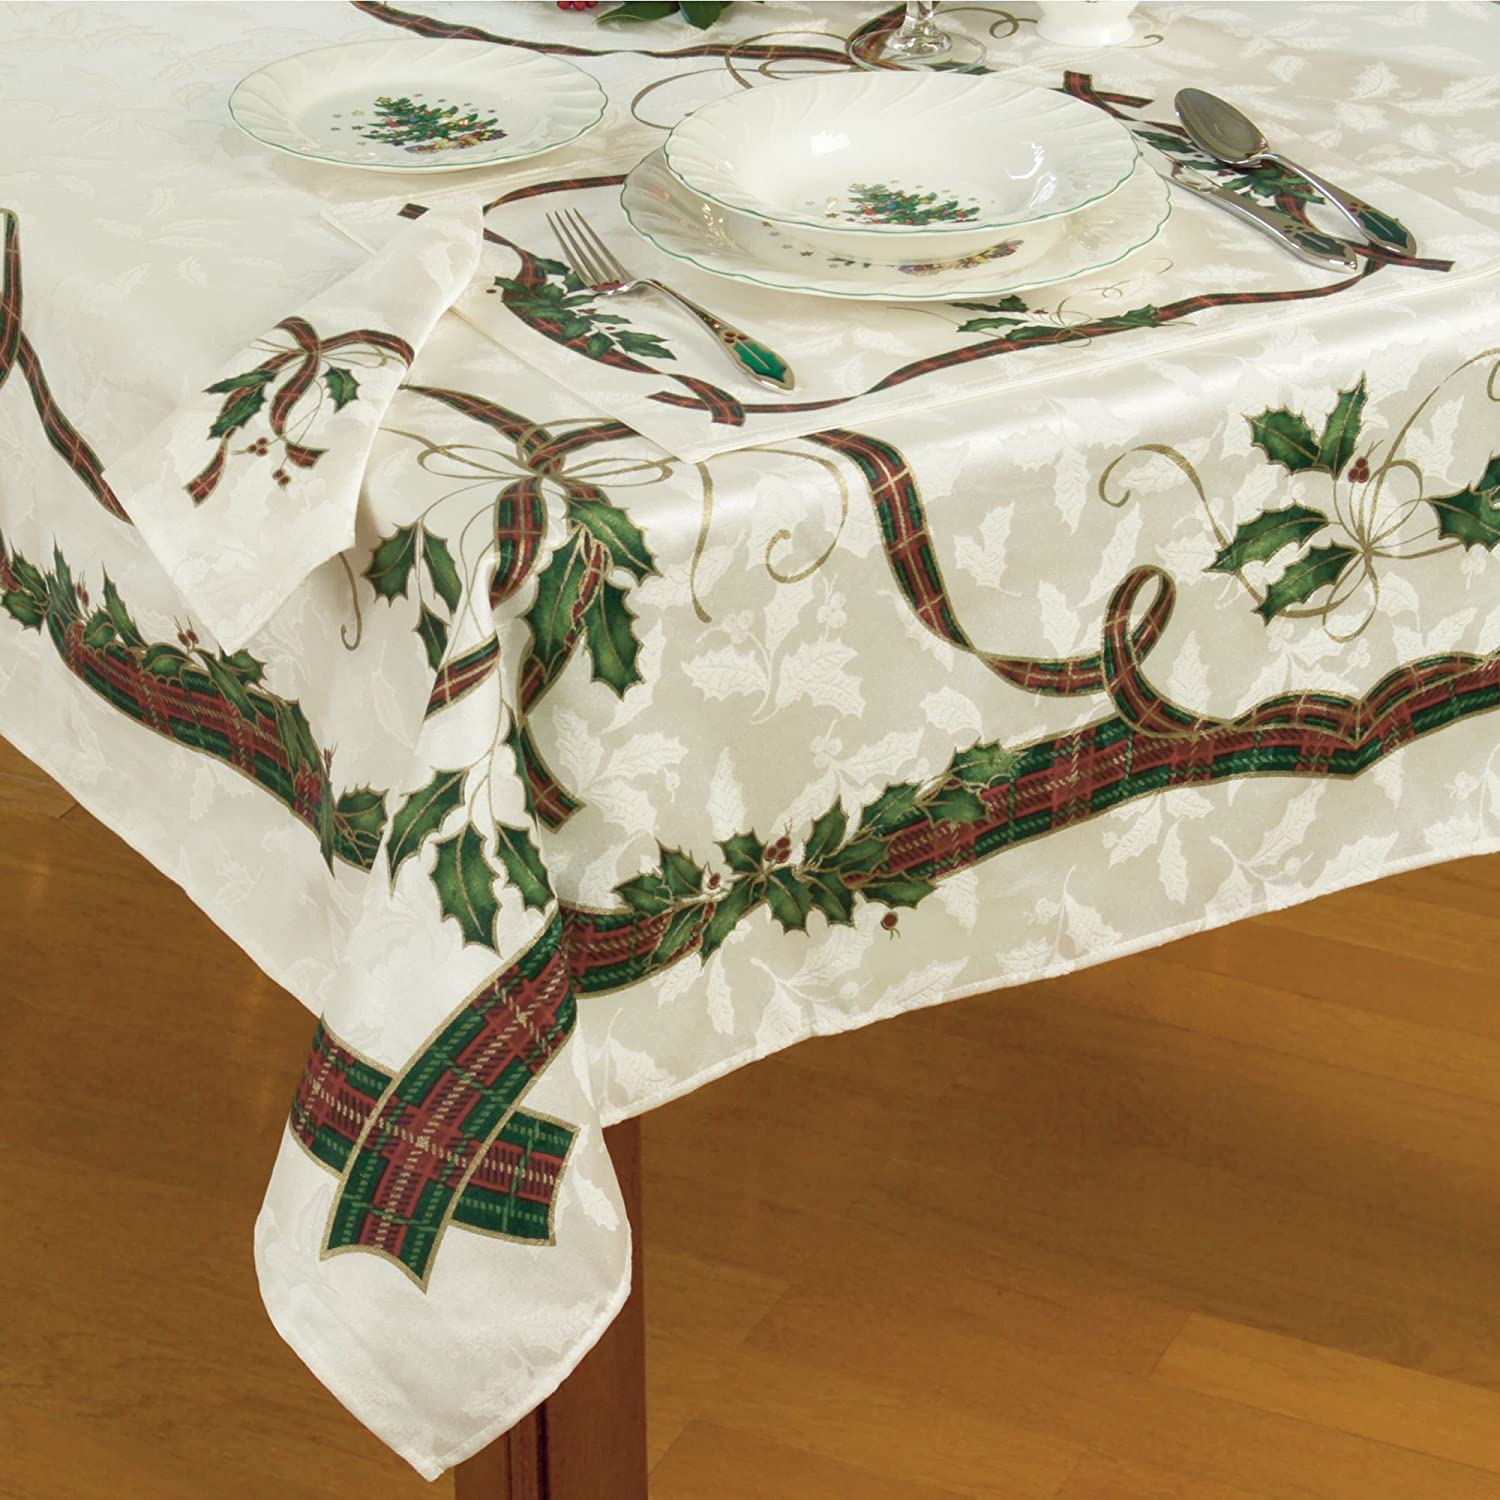 Lenox Holiday Nouveau Christmas Tablecloth ~ 60 x 84 Oblong Rectangular